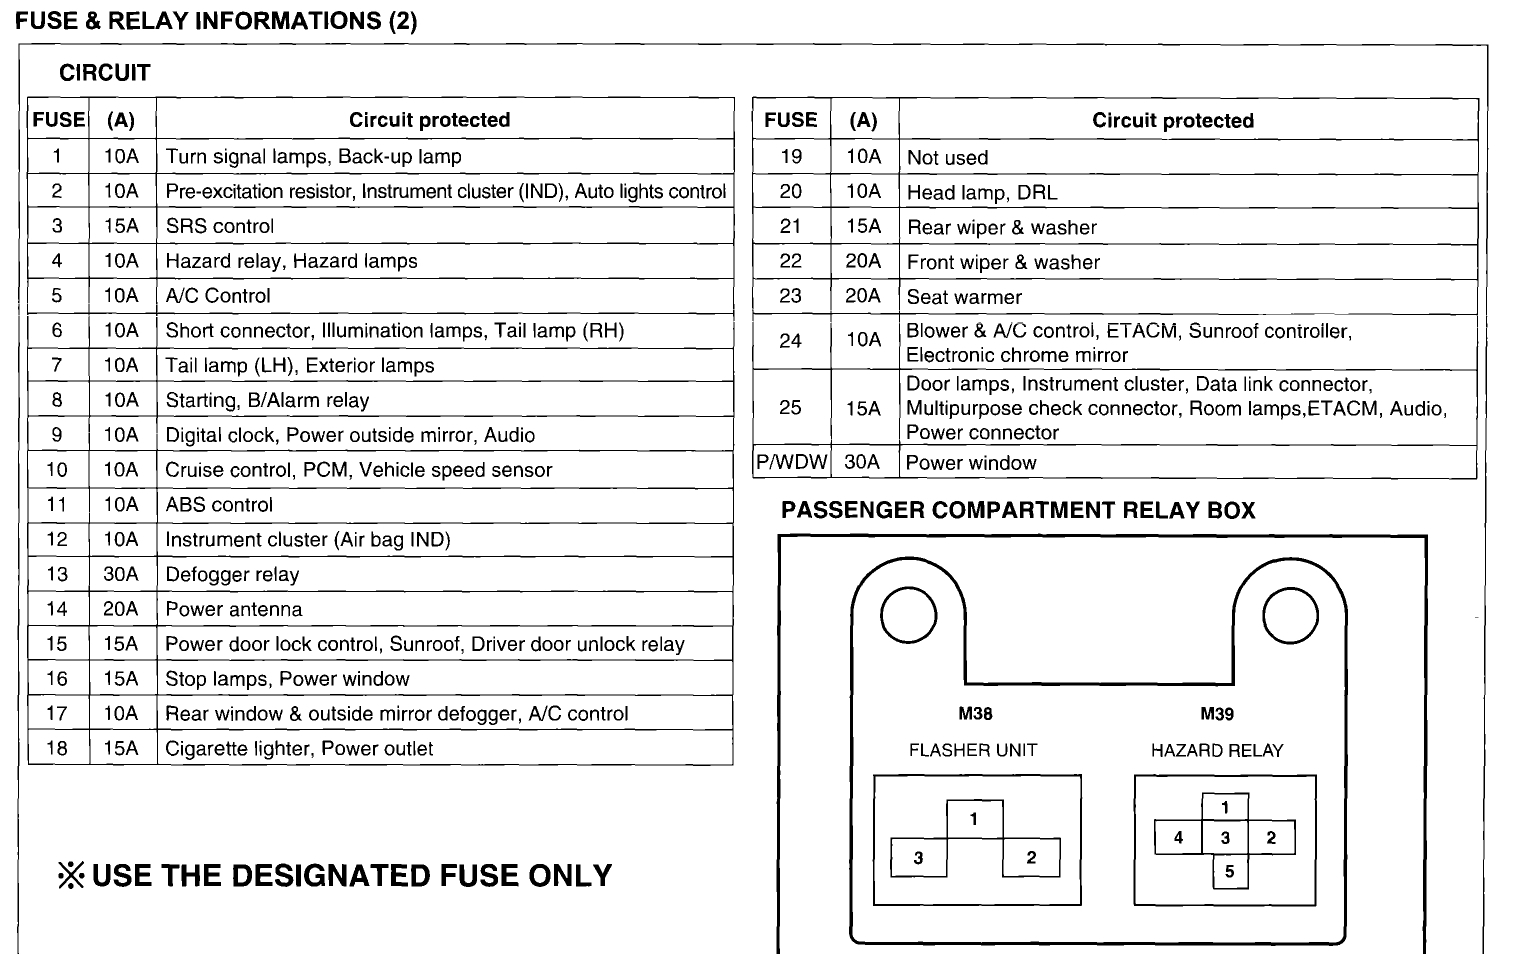 Hyundai Fuse Box Power Connector Site Www Forums Com 60 2002 Xg350 Diagram Original Ford F550 At